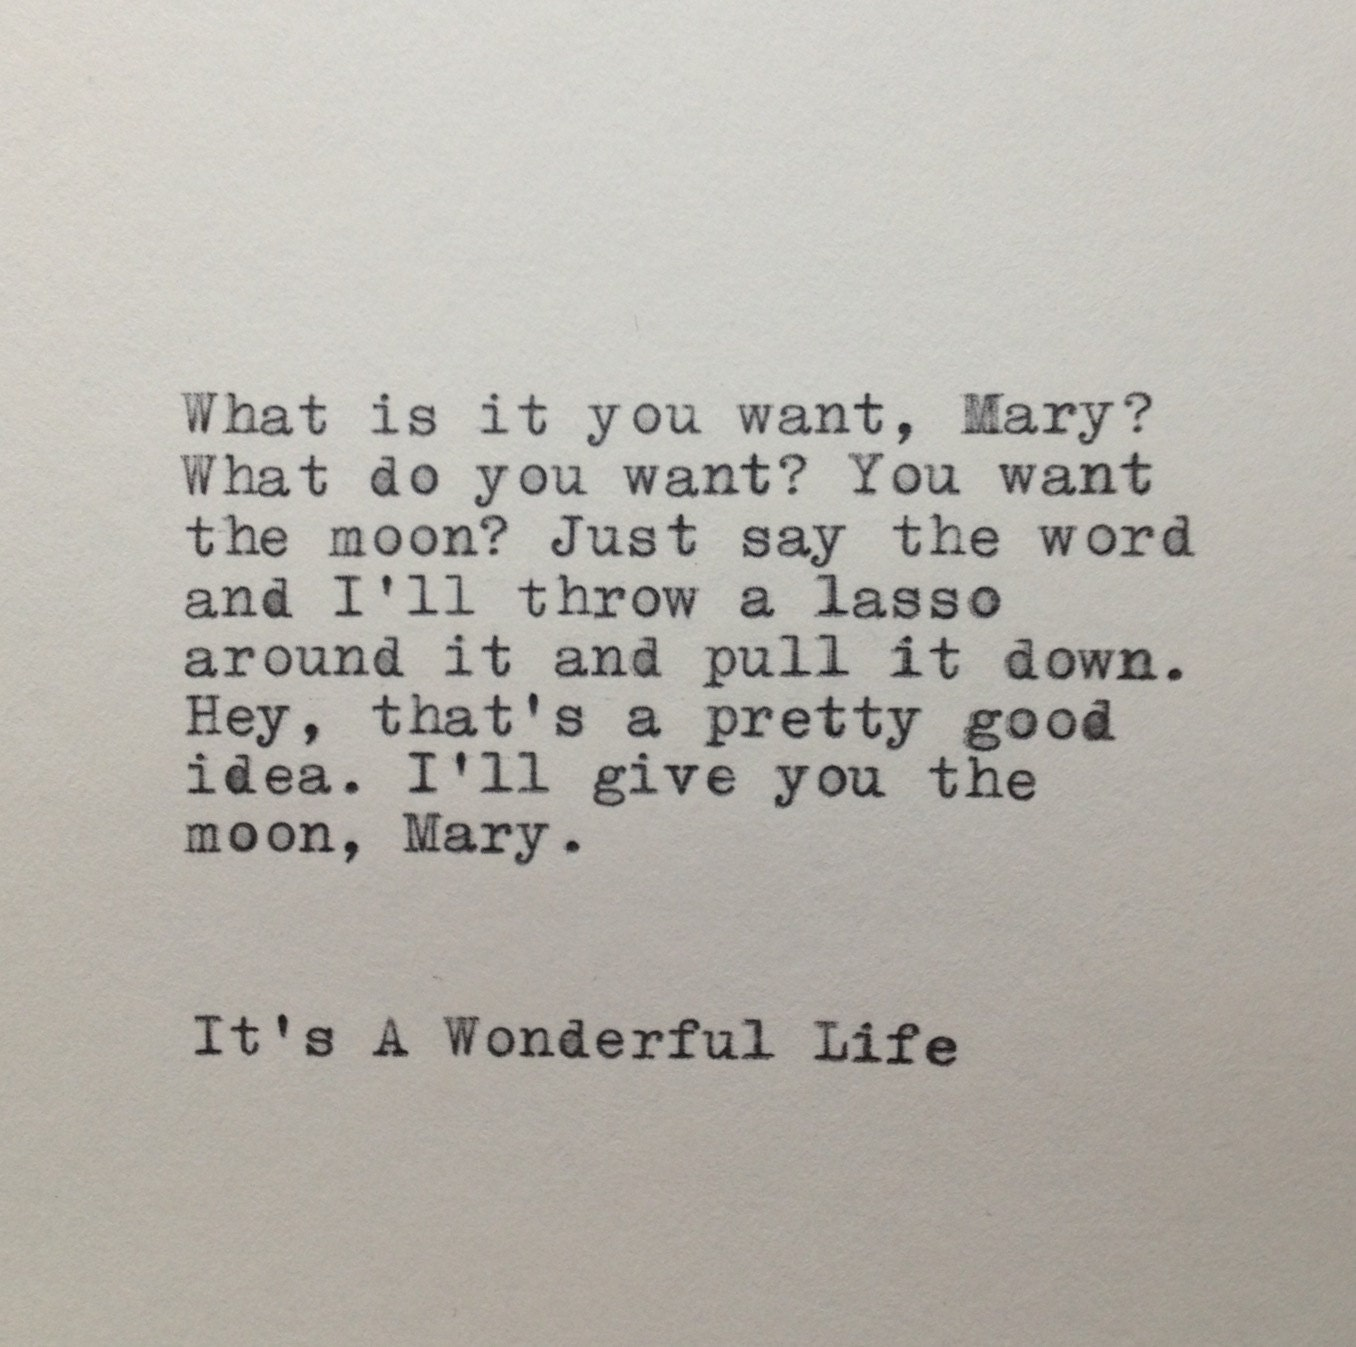 Wonderful Life Quotes Prepossessing It's A Wonderful Life Quote Typed On Typewriter